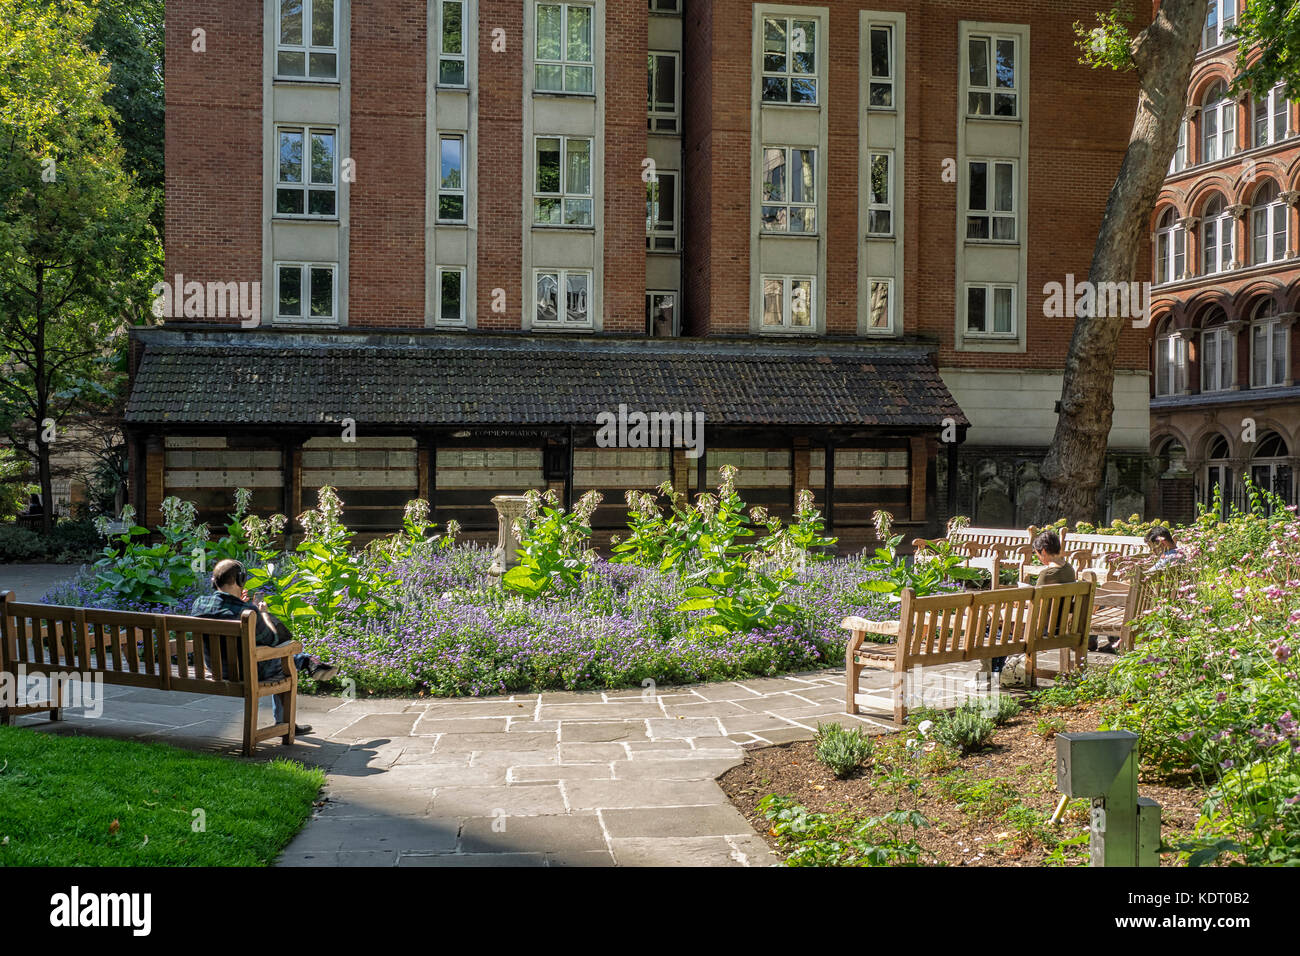 POSTMAN'S PARK, LONDON:  View of the Park showing the seating area and the Watts Memorial to Heroic Self-Sacrifice Stock Photo